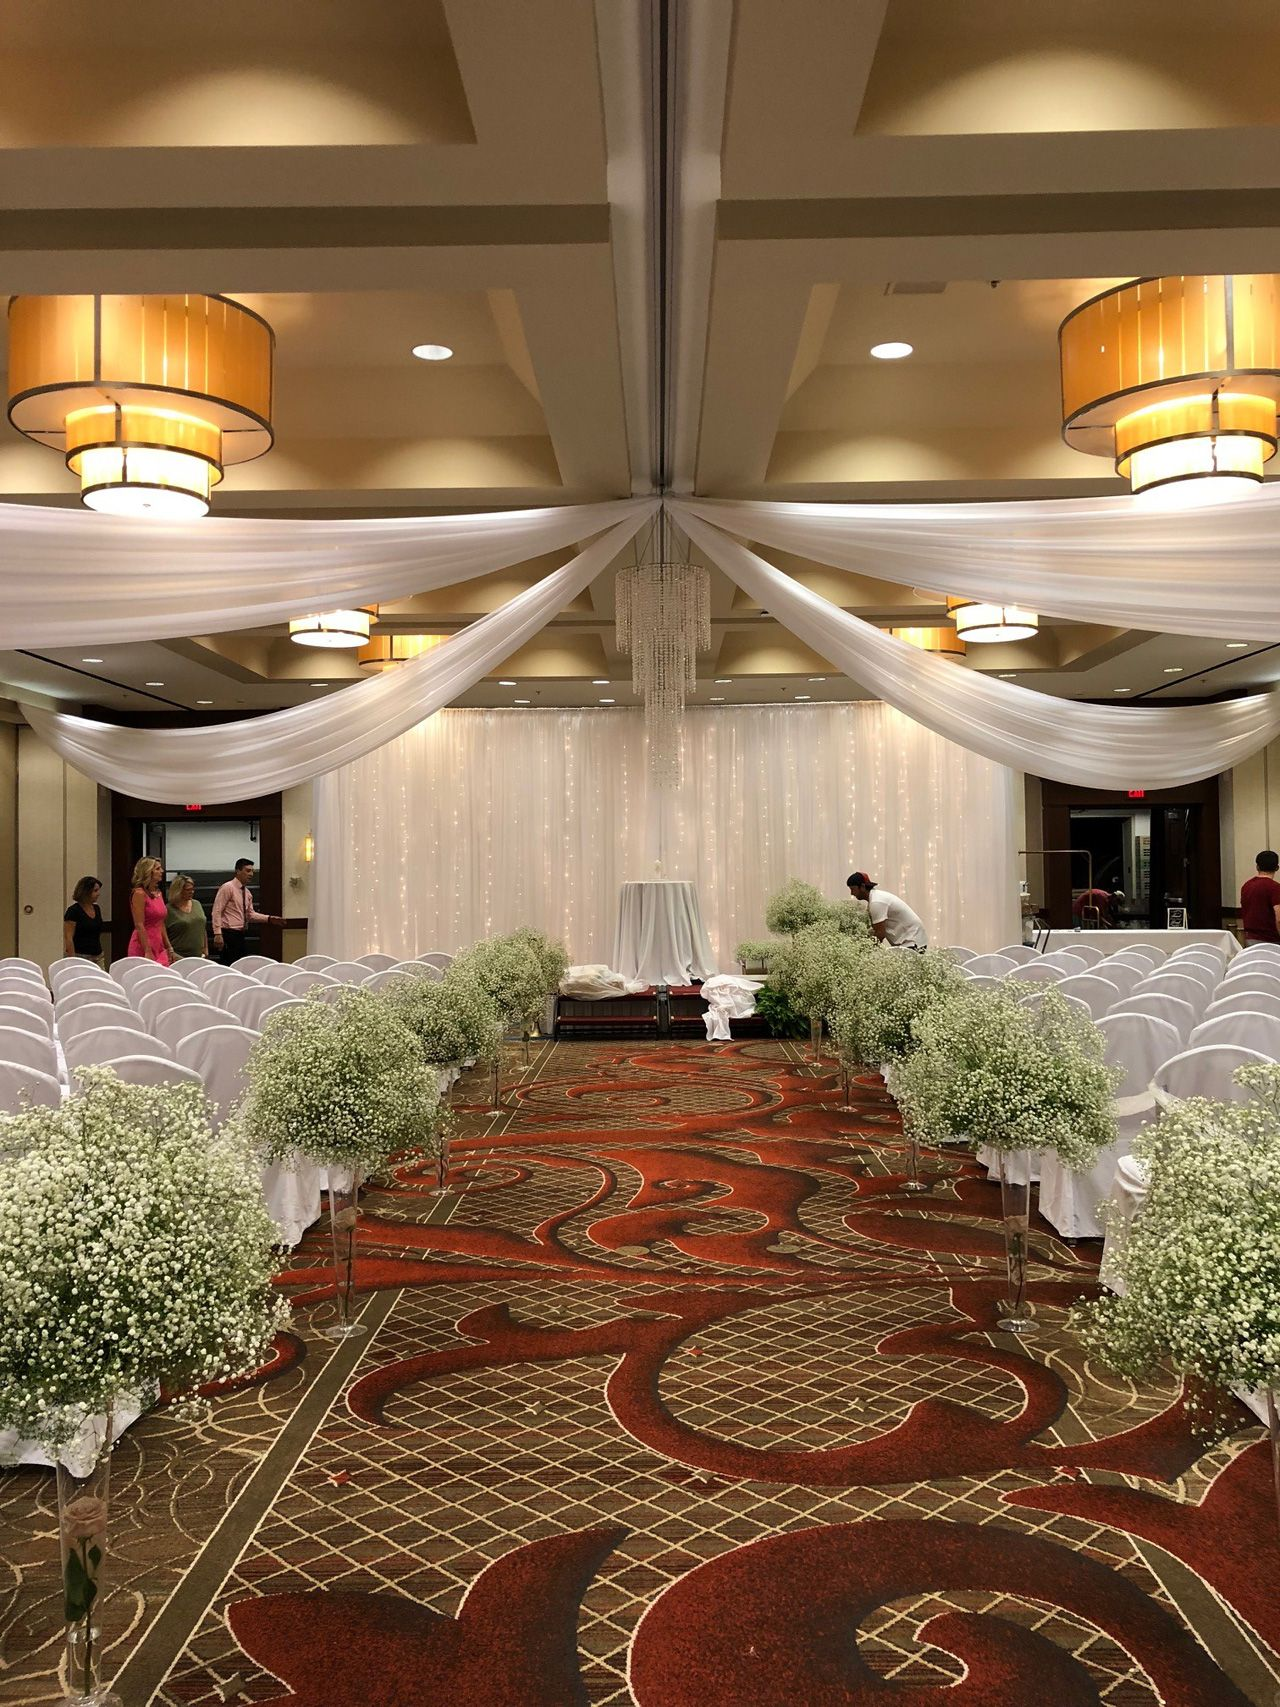 Ceiling Draping With Crystal Chandelier And Backdrop Rental At Marriott Downtown Des Moines Iowa Wedding Rentals Ceiling Draping Event Rental